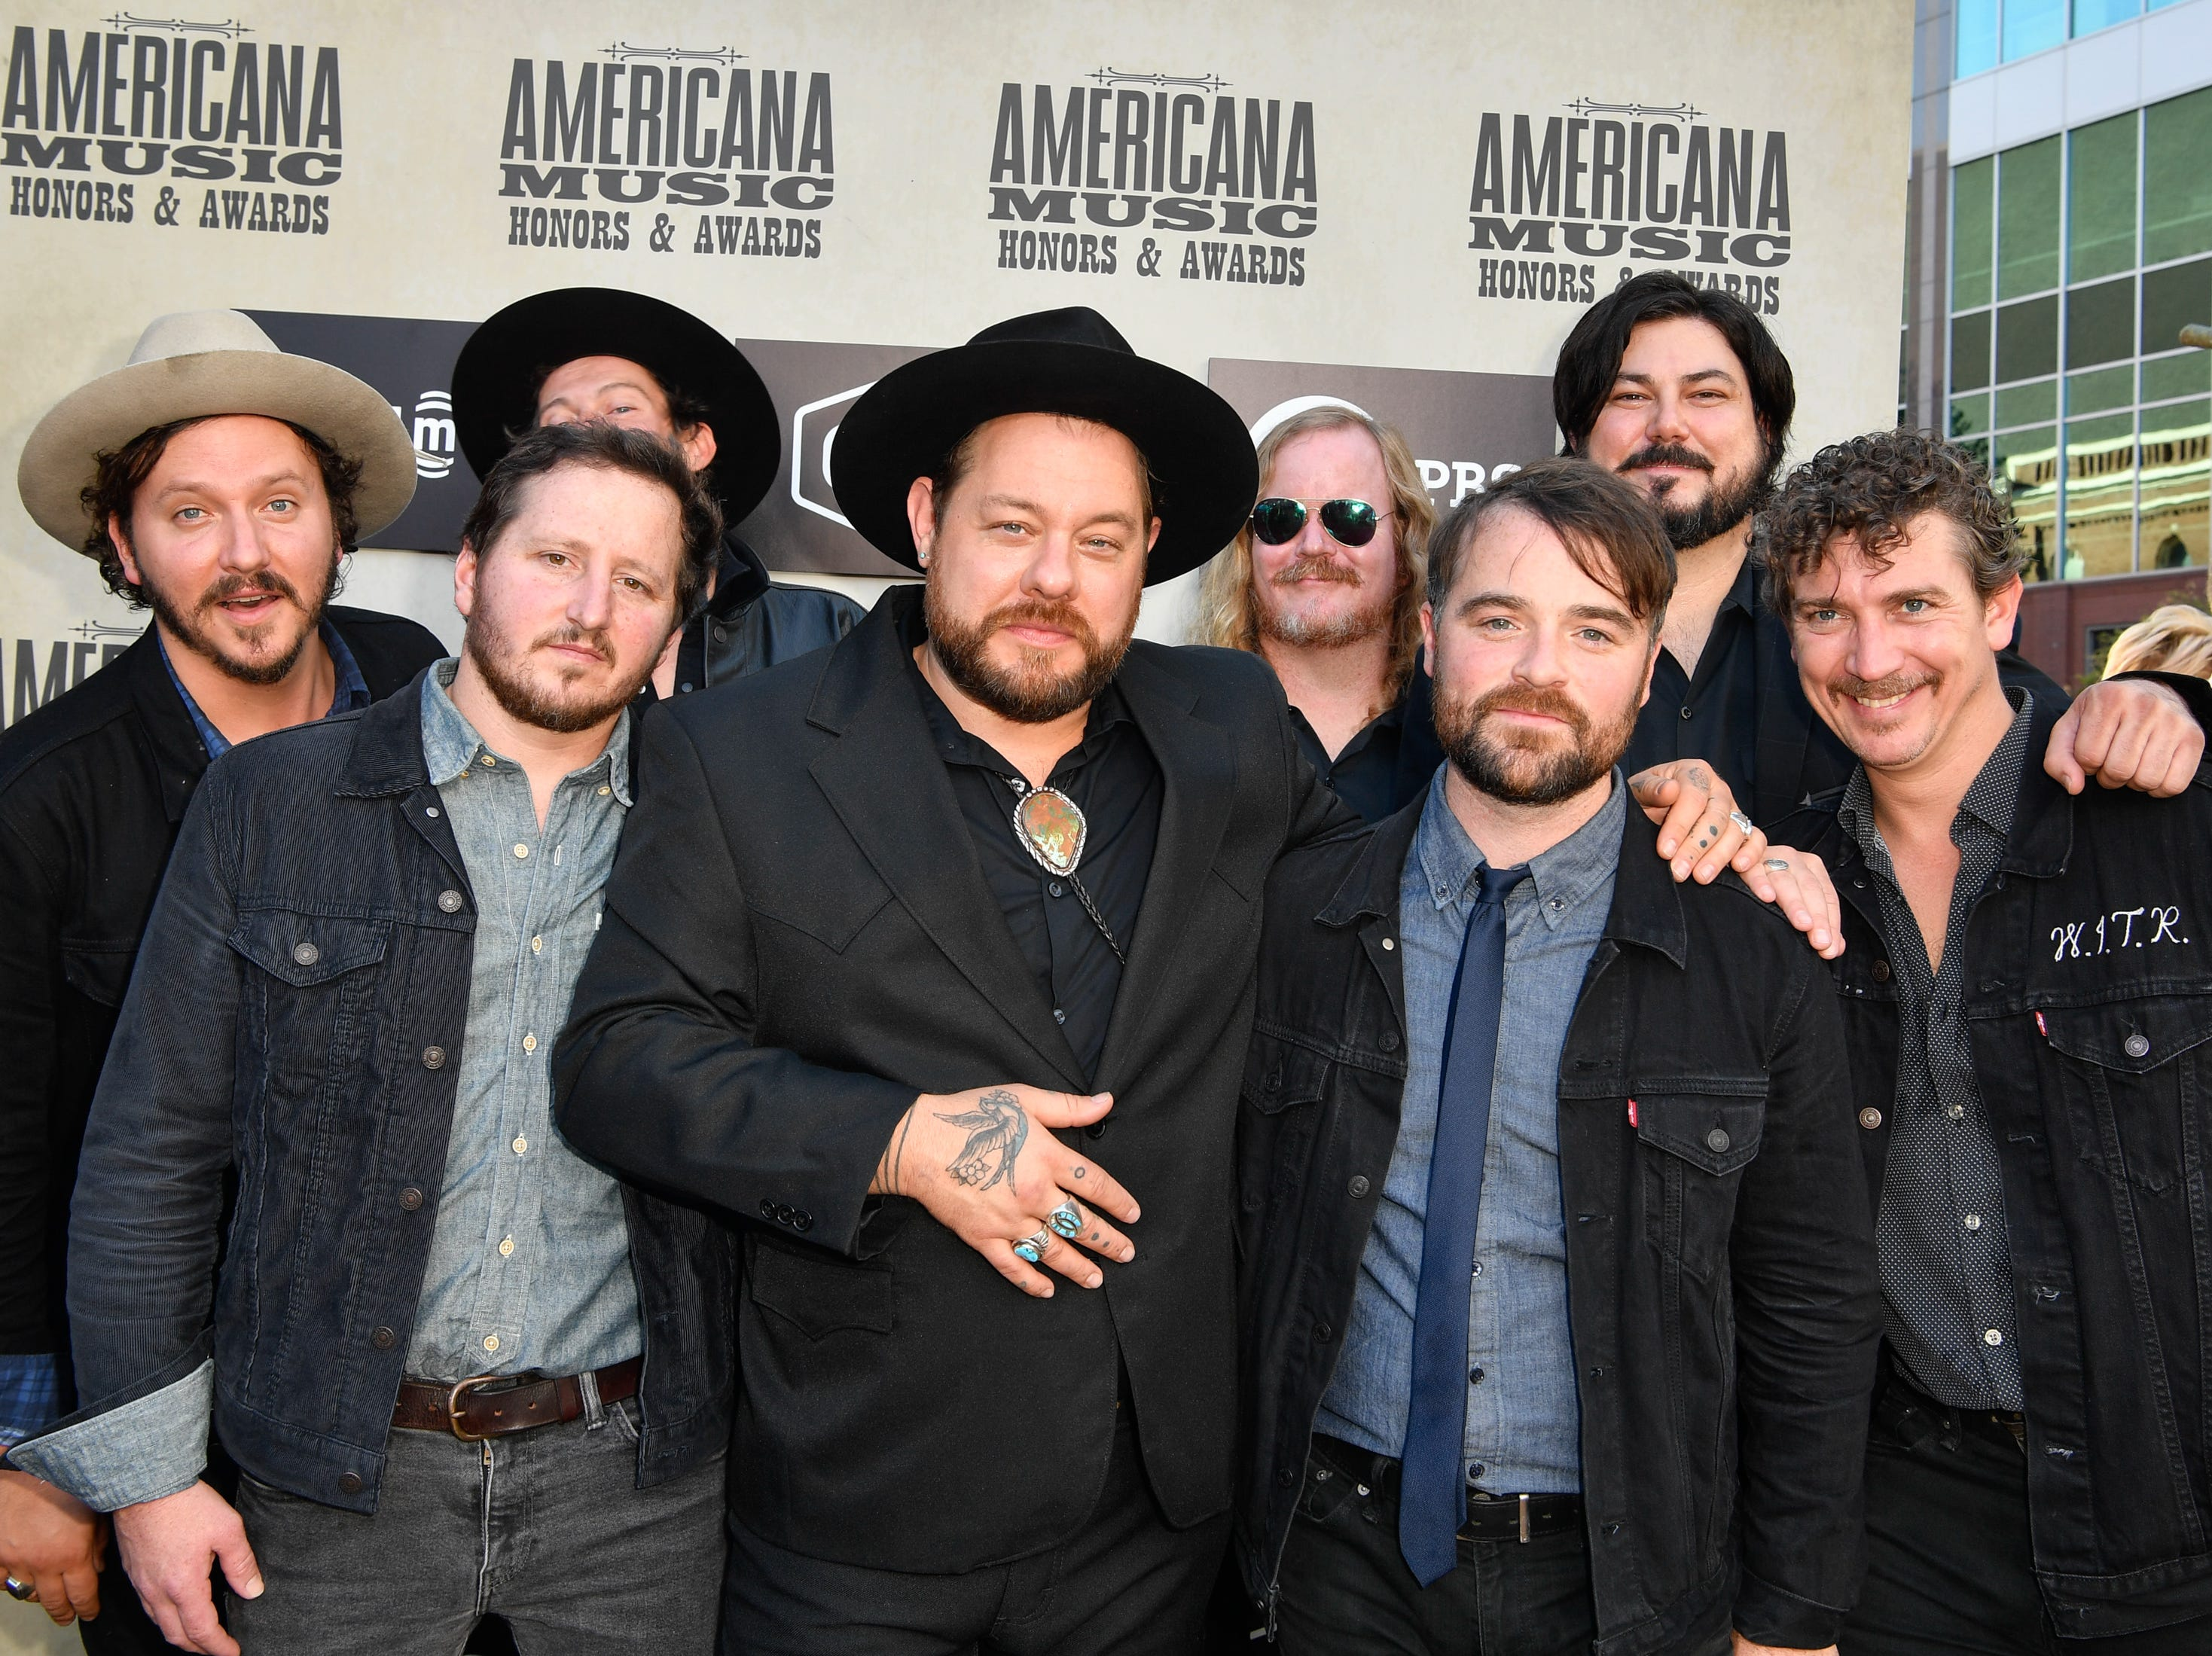 Nathaniel Rateliff and The Night Sweats pose on the red carpet before the 2018 Americana Honors and Awards show at the Ryman Auditorium in Nashville, Tenn., Wednesday, Sept. 12, 2018.